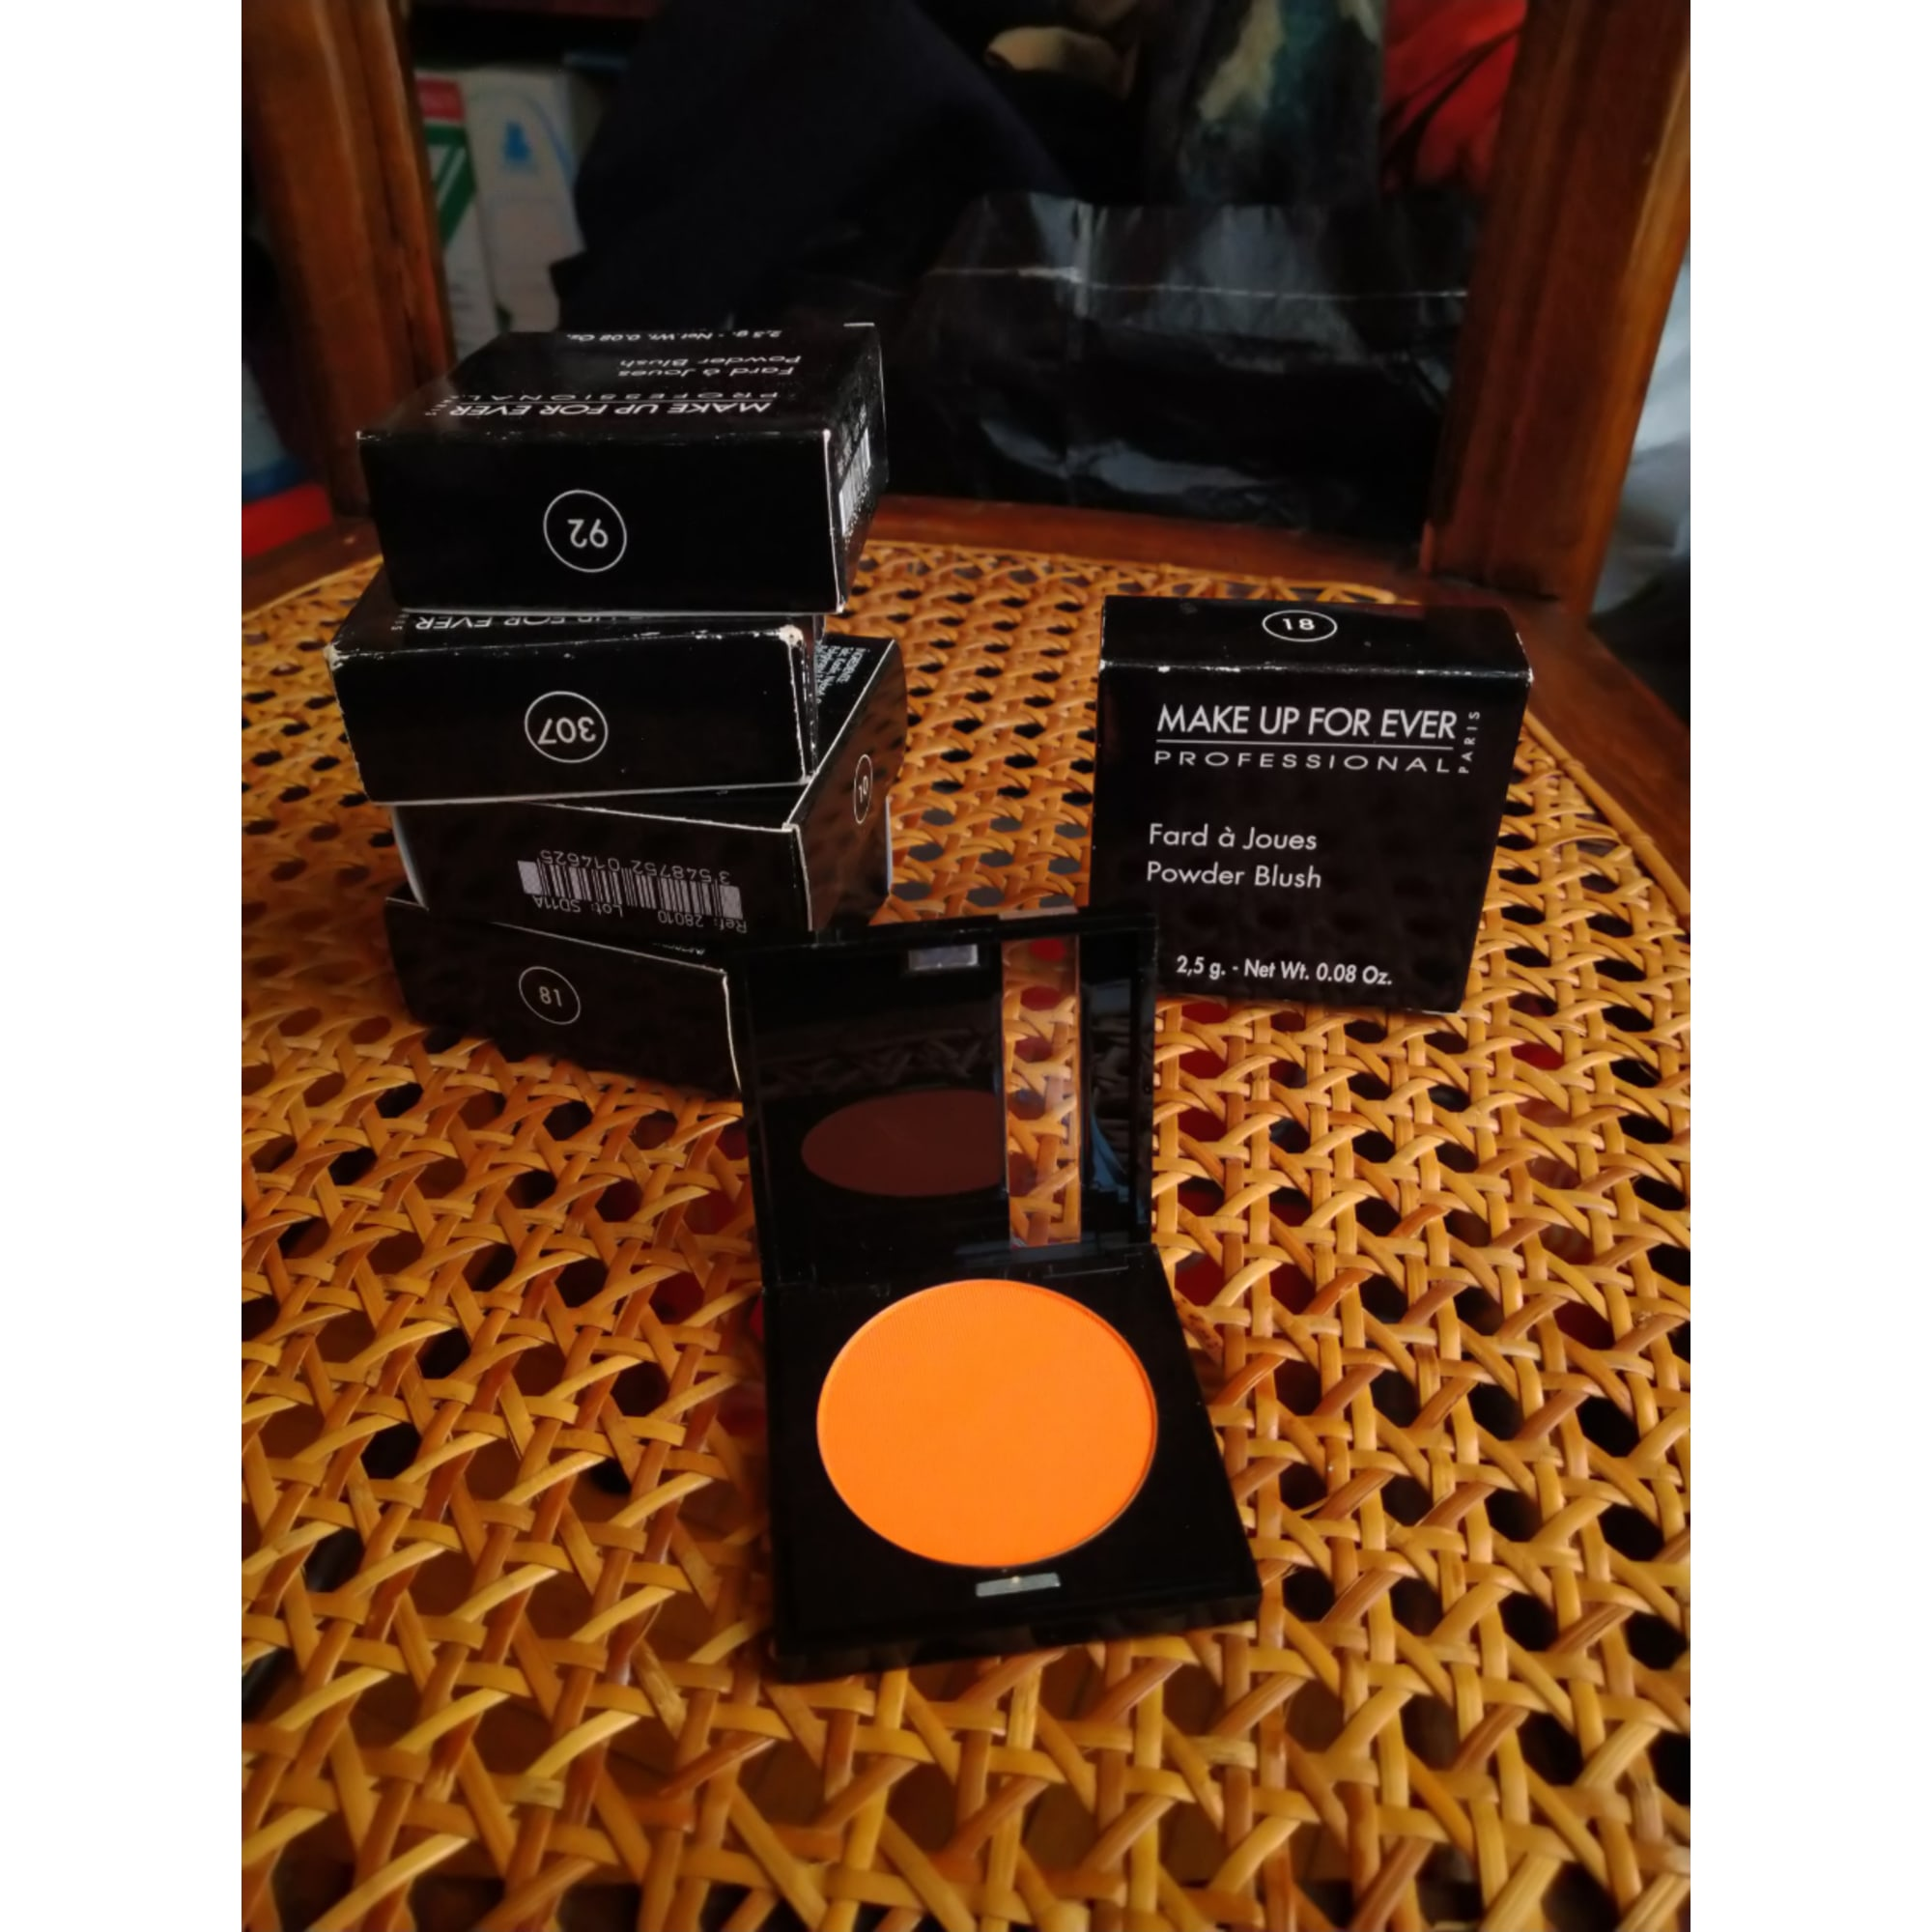 Blush, fard à joues MAKE UP FOR EVER orange